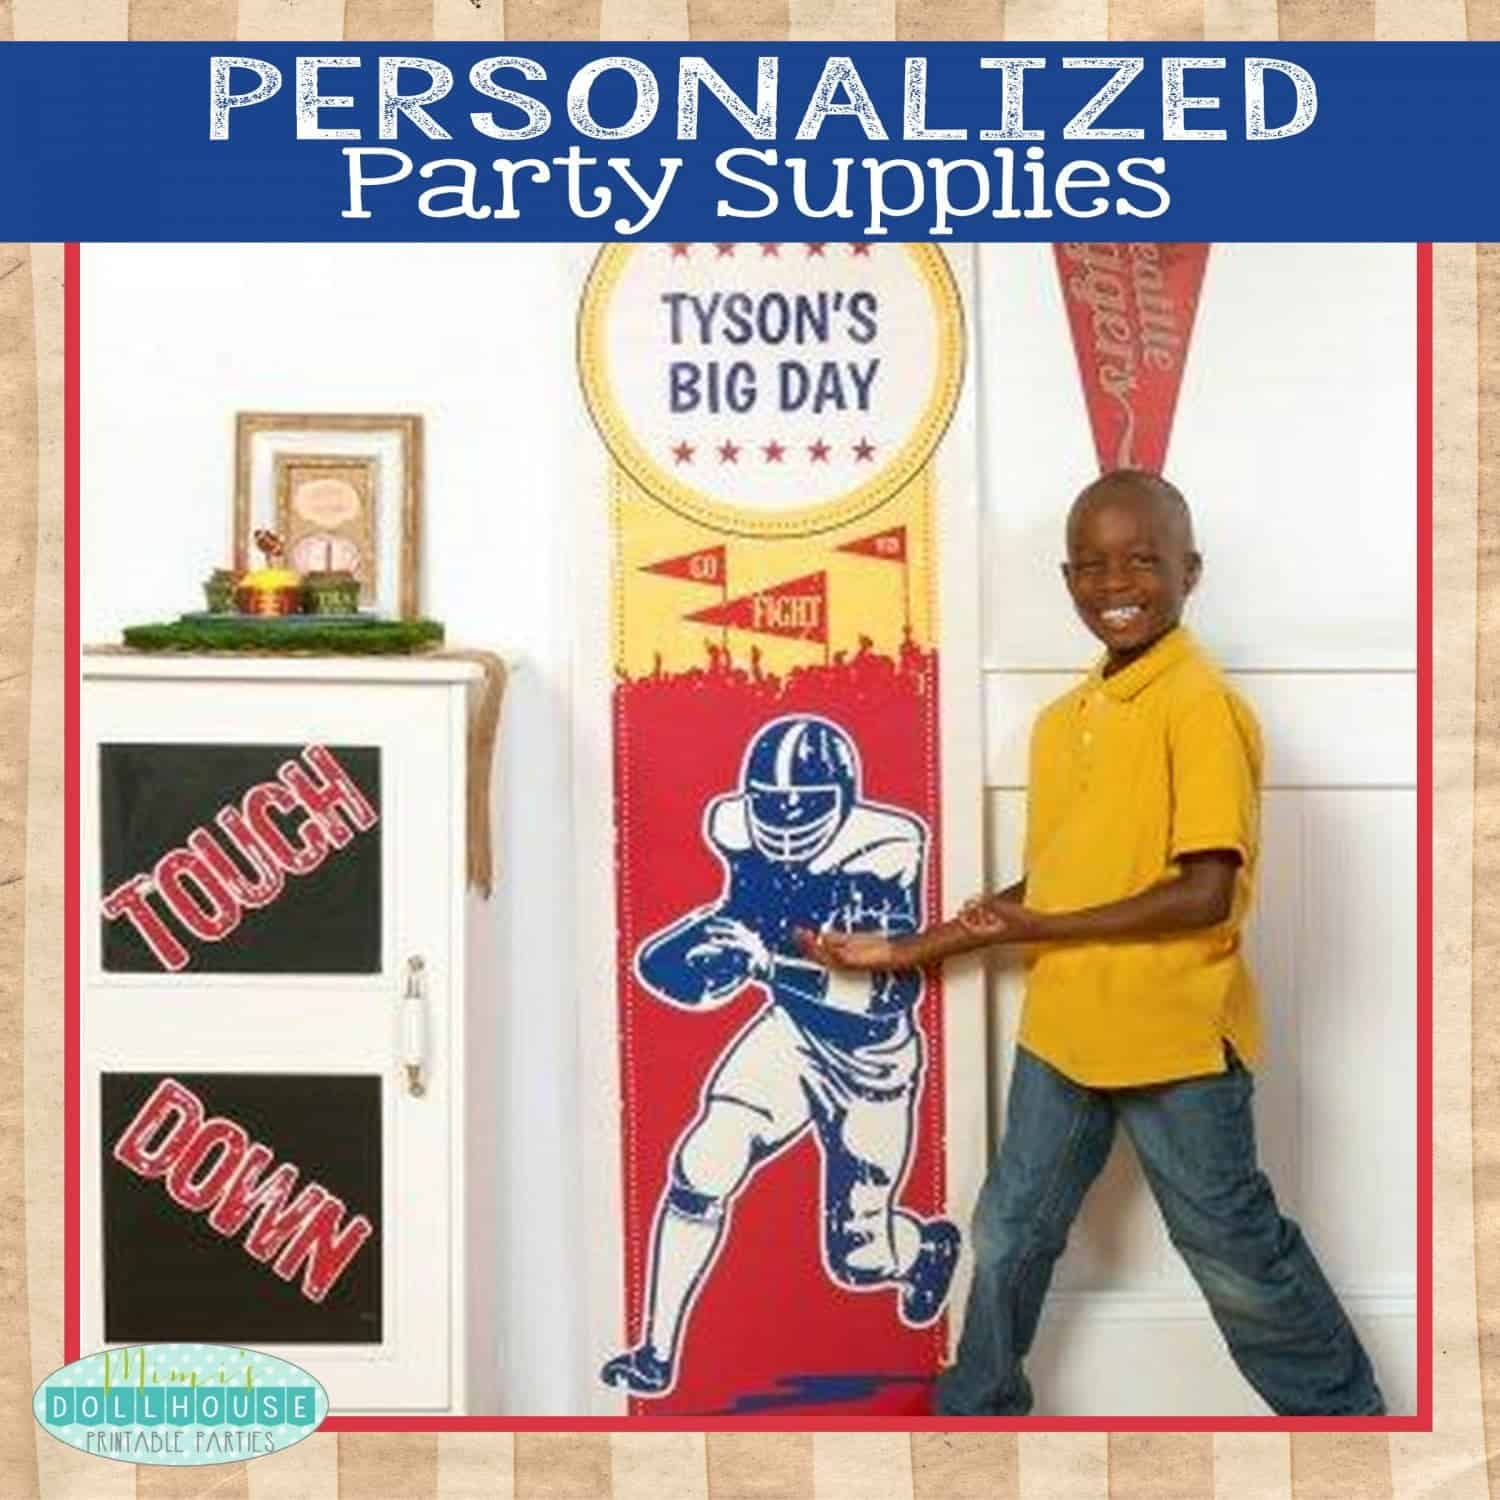 Birthday Express: Personalized Birthday Party Supplies